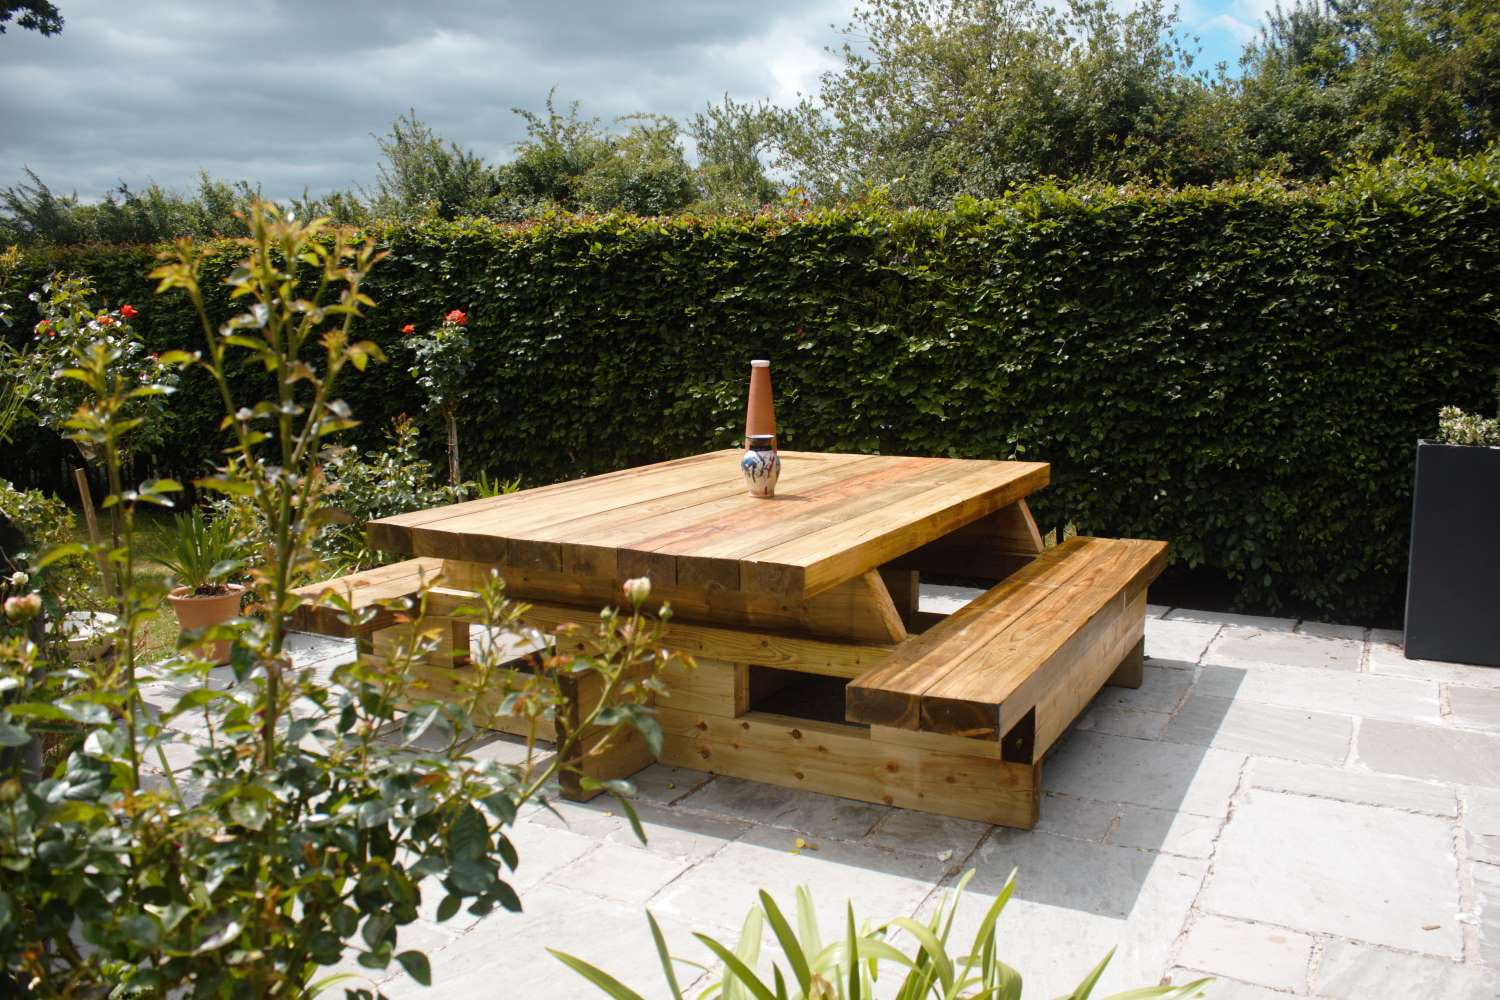 Outdoor Living structures - Bespoke Outdoors Living Ltd on Bespoke Outdoor Living id=79941